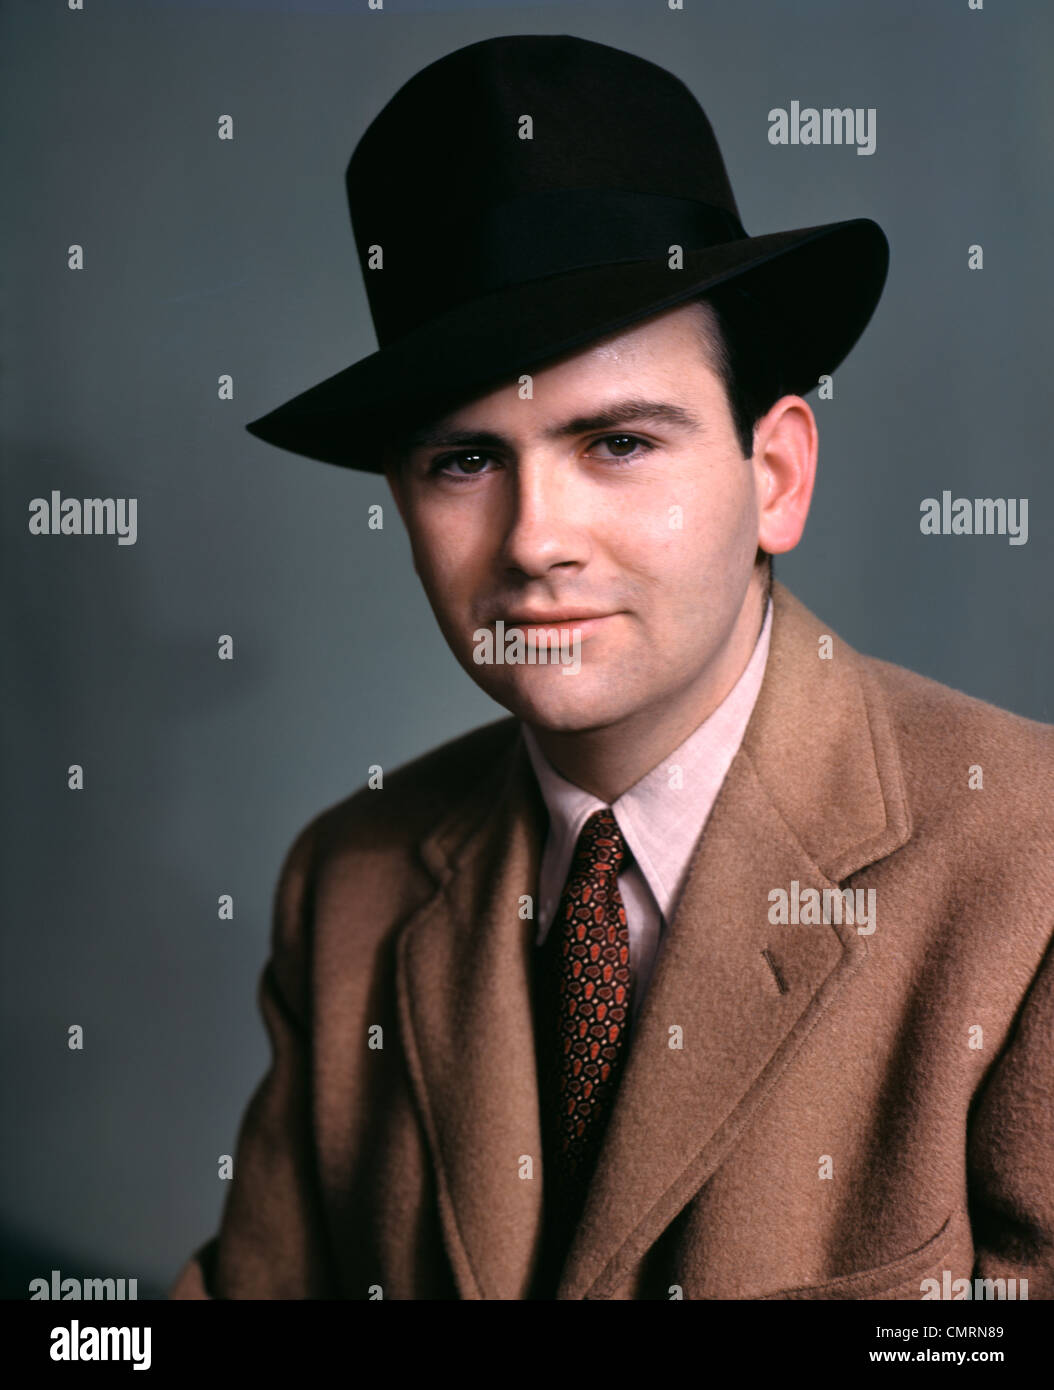 acb0d690caa70 1940s 1950s PORTRAIT FASHIONABLE YOUNG MAN WEARING BLACK FEDORA HAT CAMEL  HAIR COAT AND TIE -